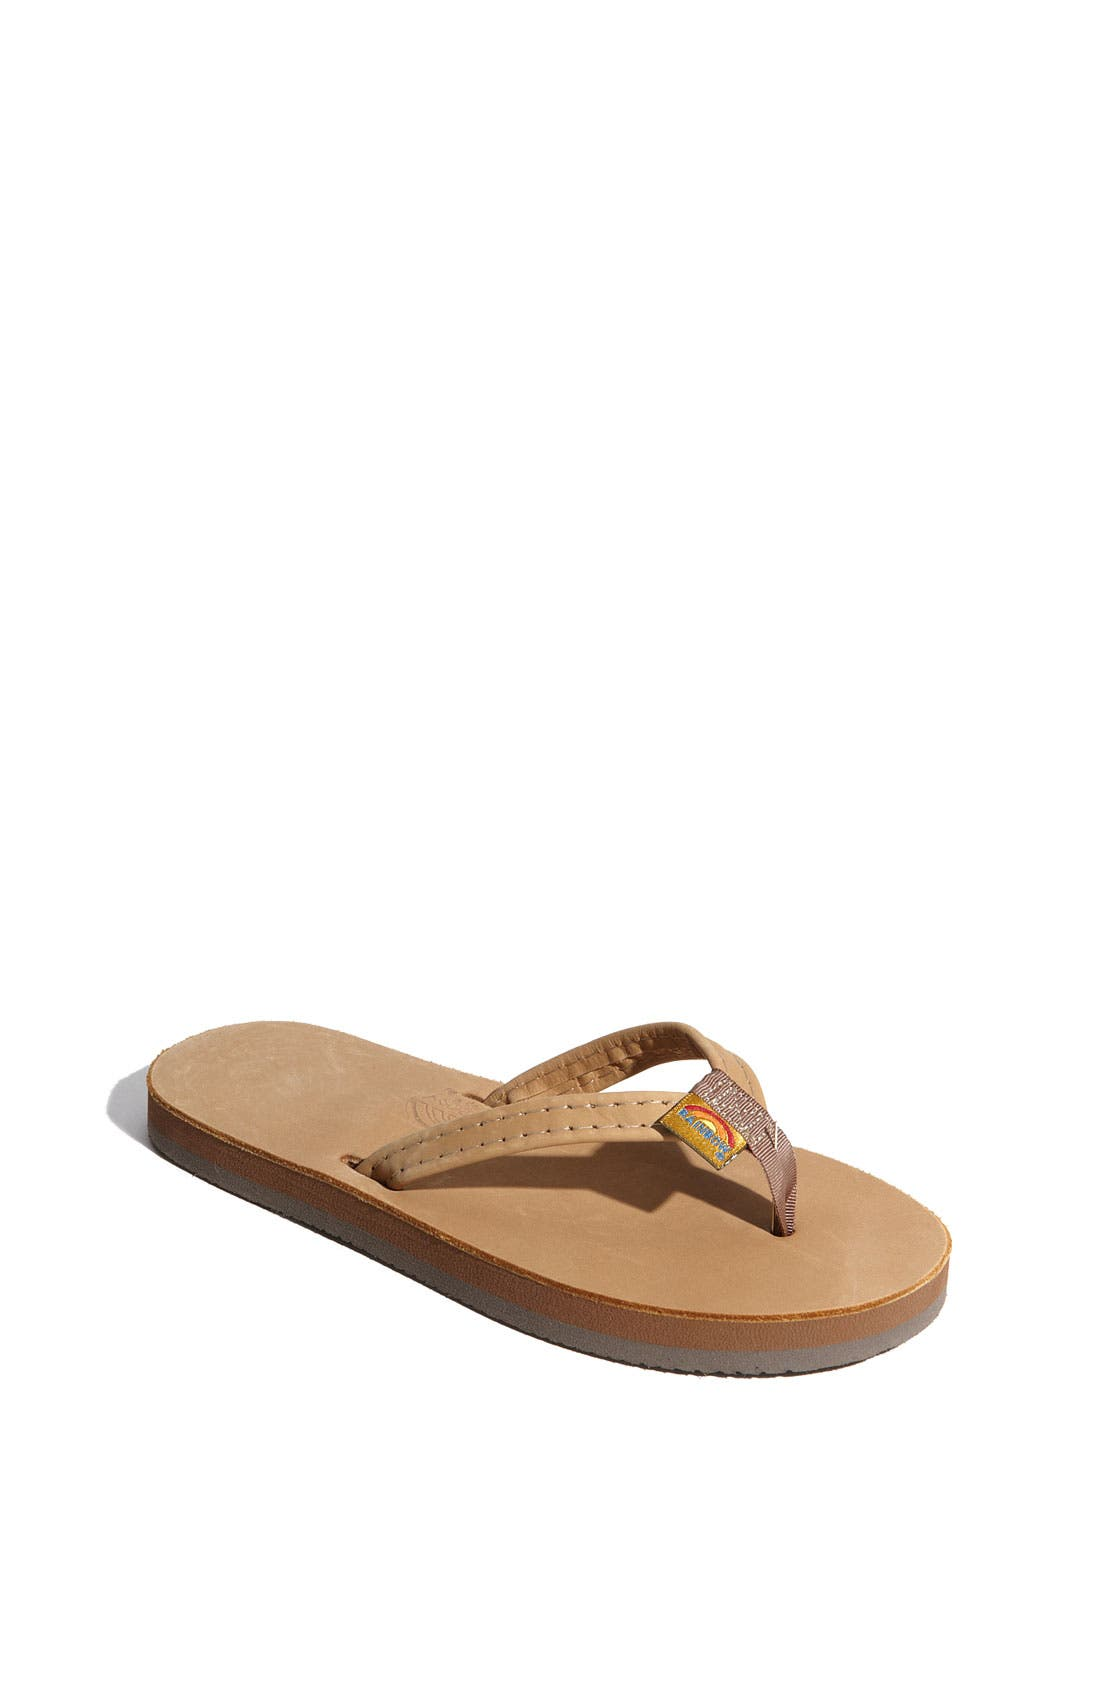 Main Image - Rainbow Leather Flip Flop (Toddler, Little Kid & Big Kid)